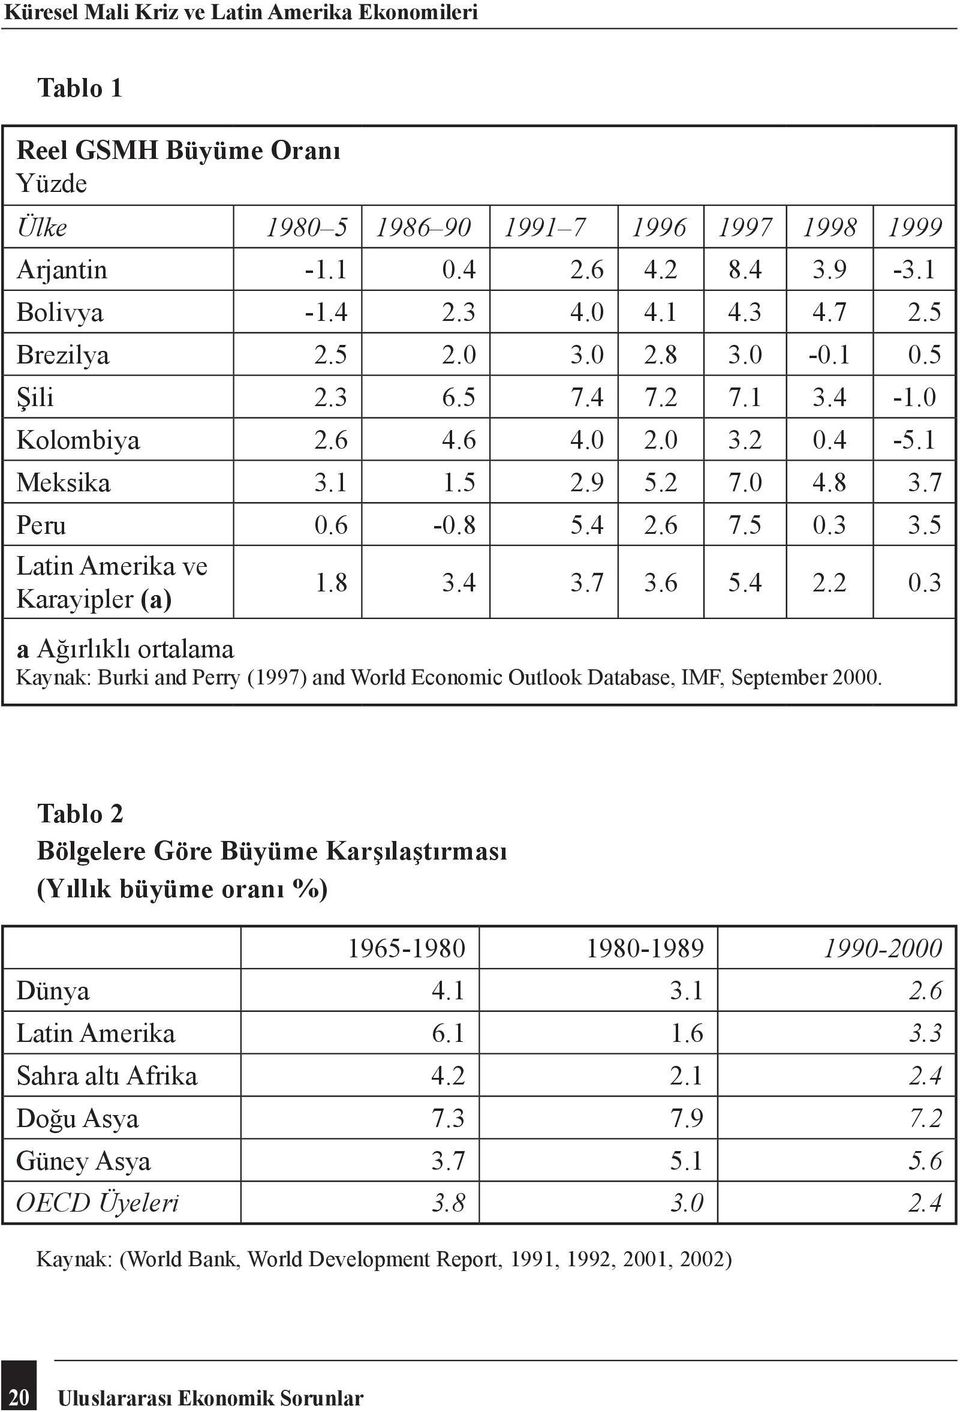 5 Latin Amerika ve Karayipler (a) 1.8 3.4 3.7 3.6 5.4 2.2 0.3 a Ağırlıklı ortalama Kaynak: Burki and Perry (1997) and World Economic Outlook Database, IMF, September 2000.